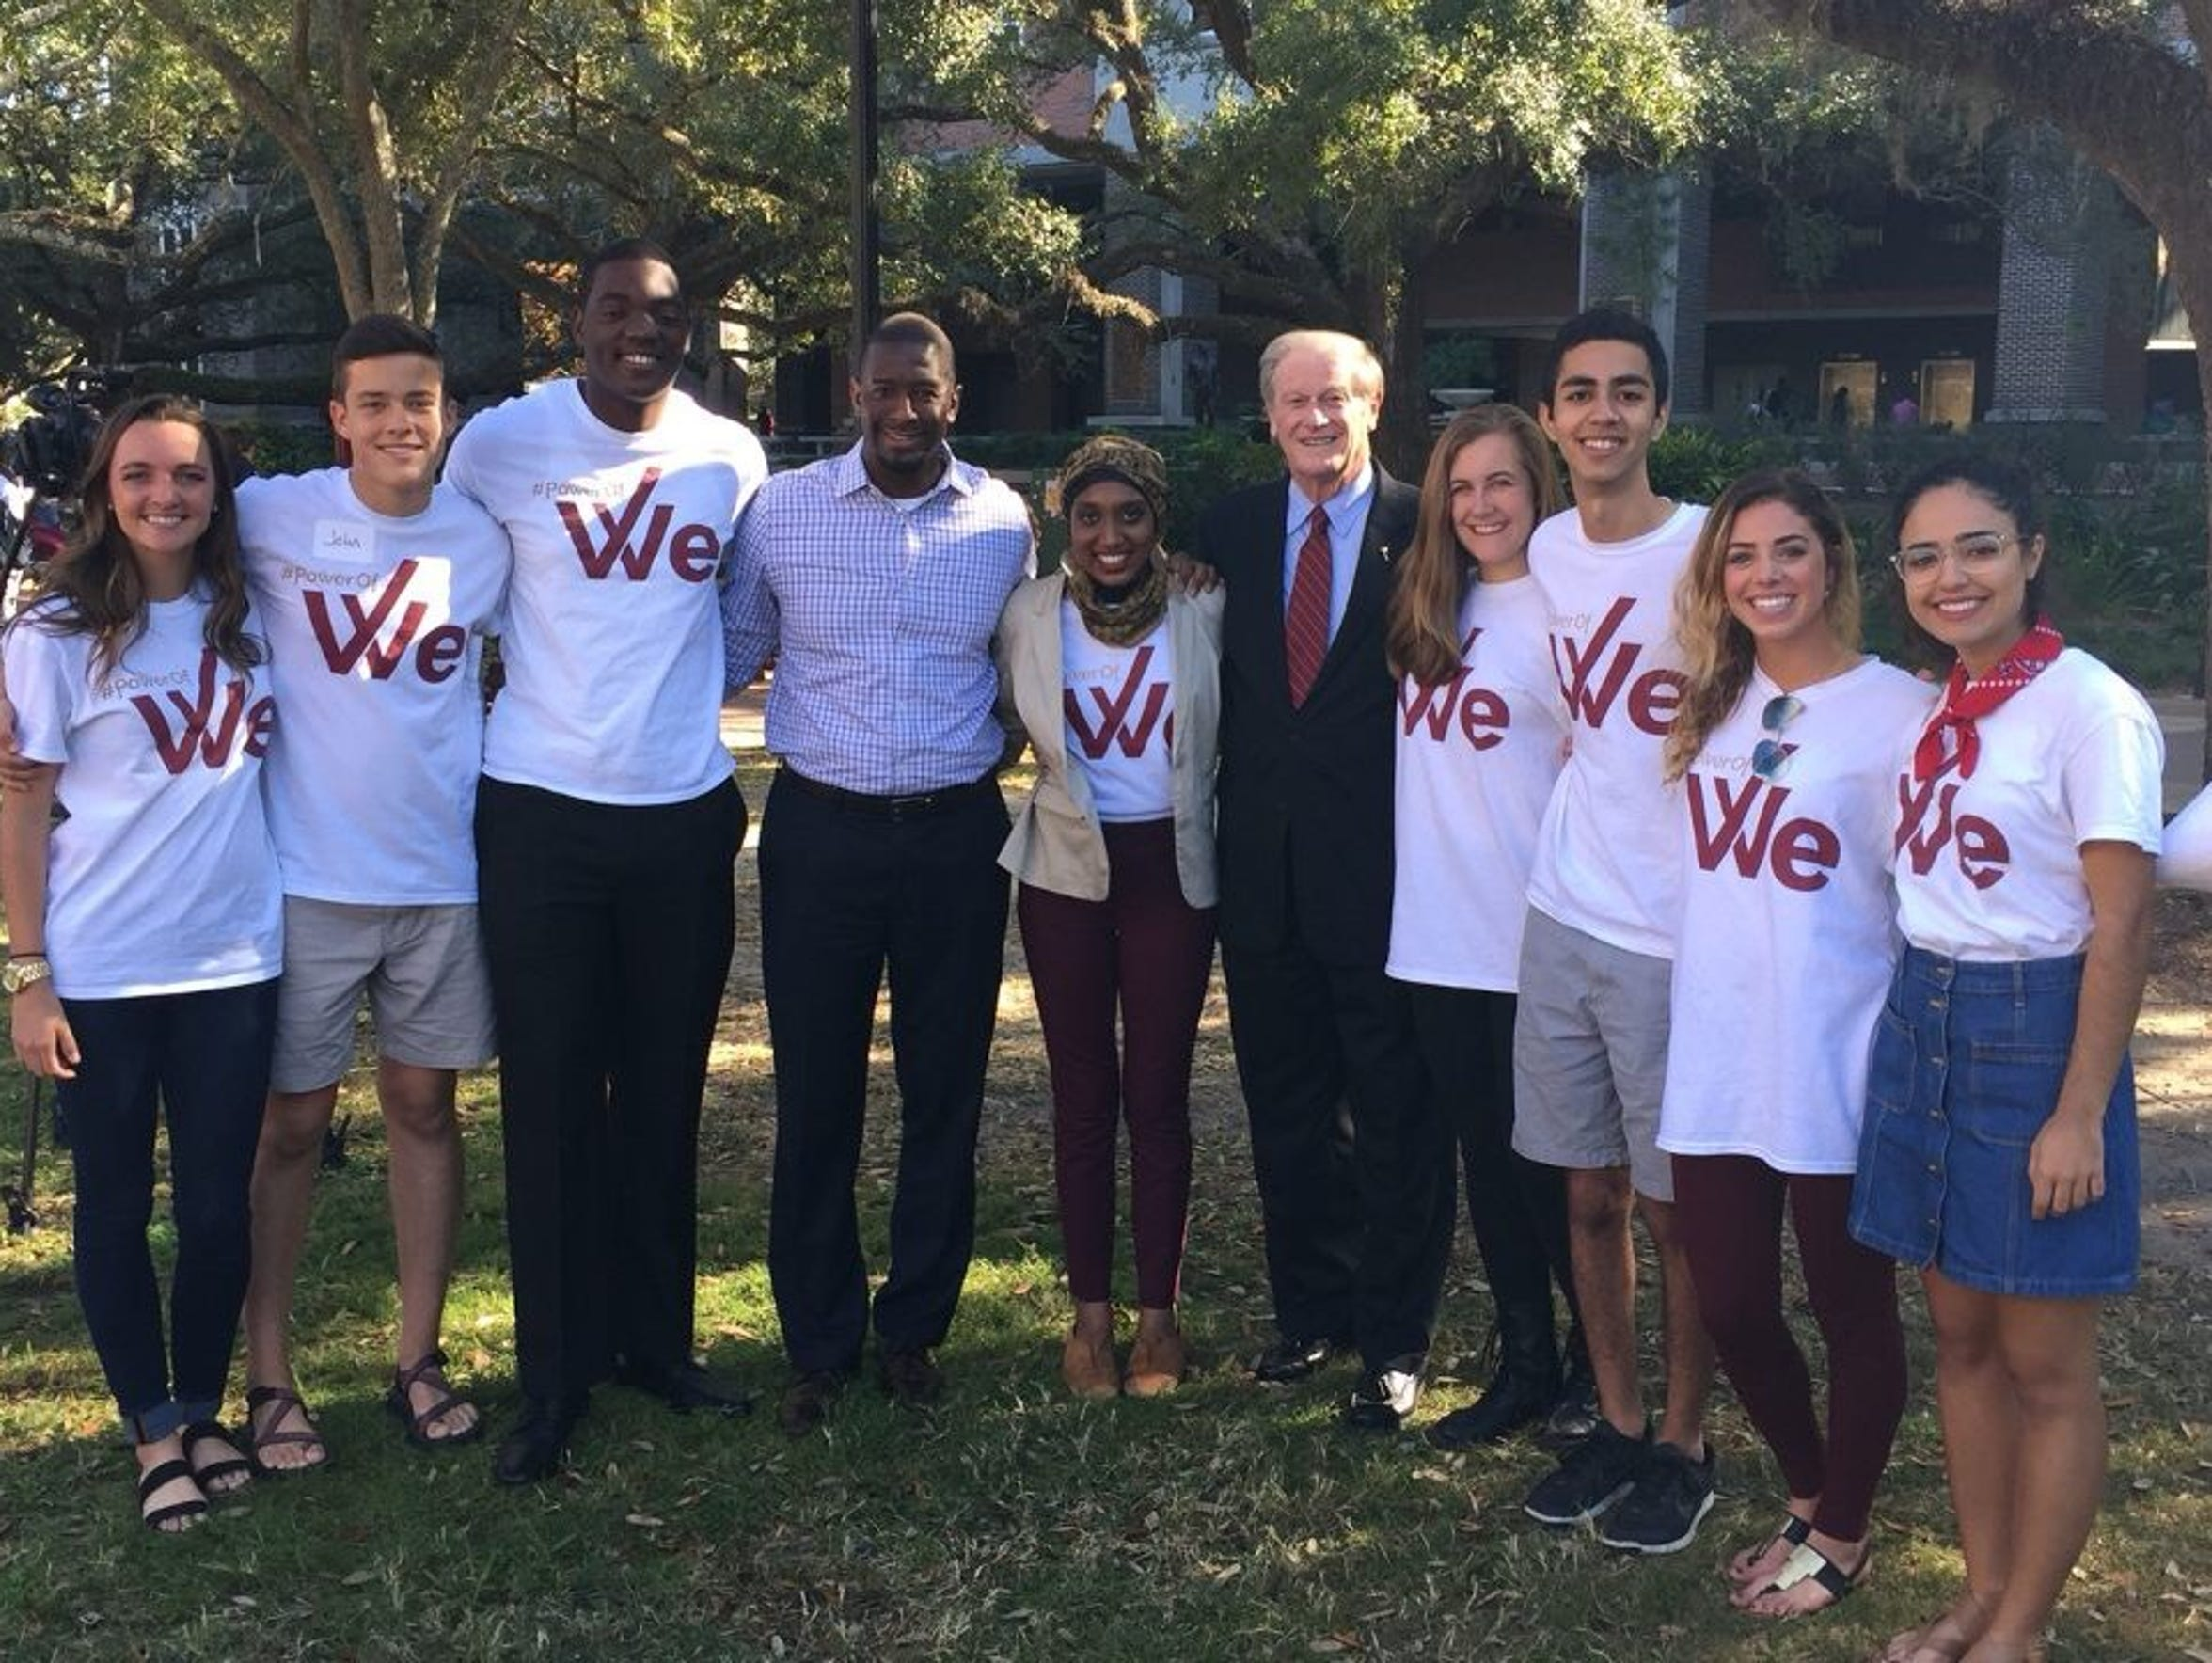 President Thrasher poses for a picture with Tallahassee